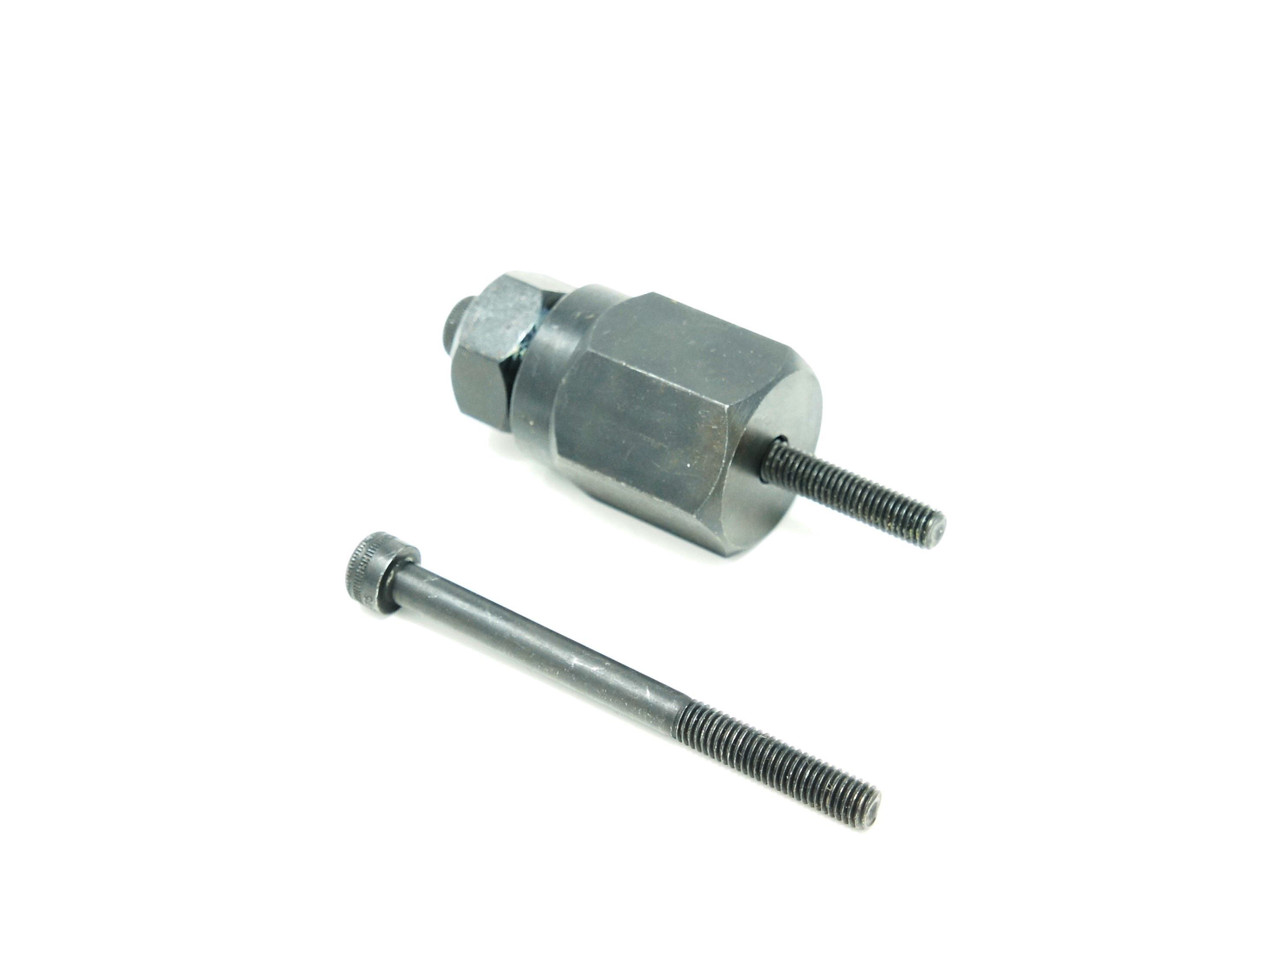 D - INDUSTRIES M5 THREAD INSERT TOOL